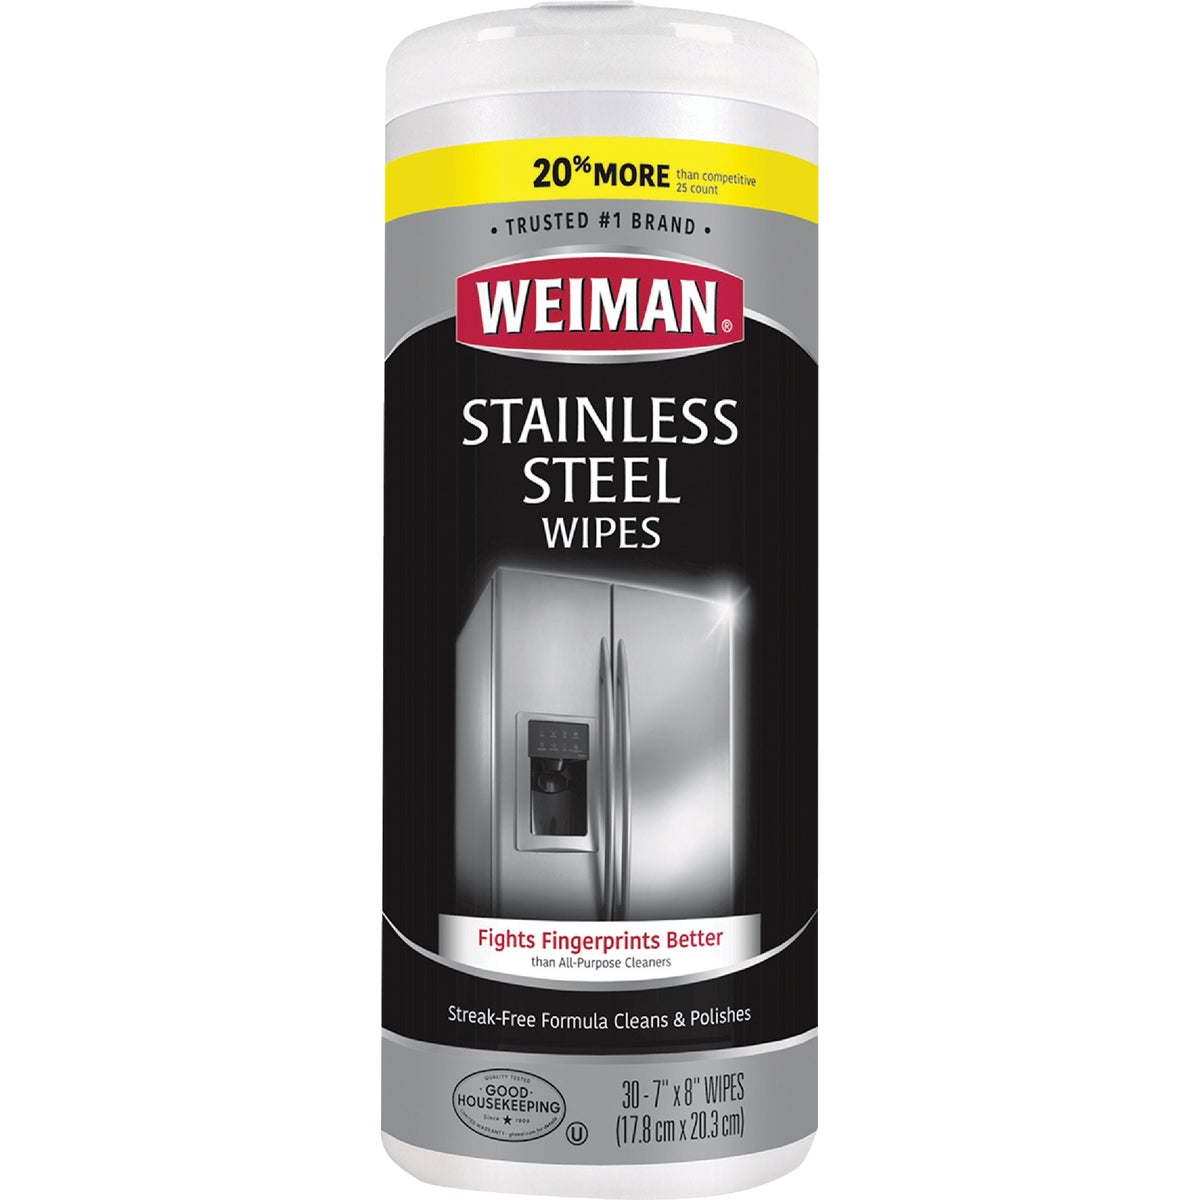 STAINLESS STEEL WIPES - 92 by Weiman Products Llc